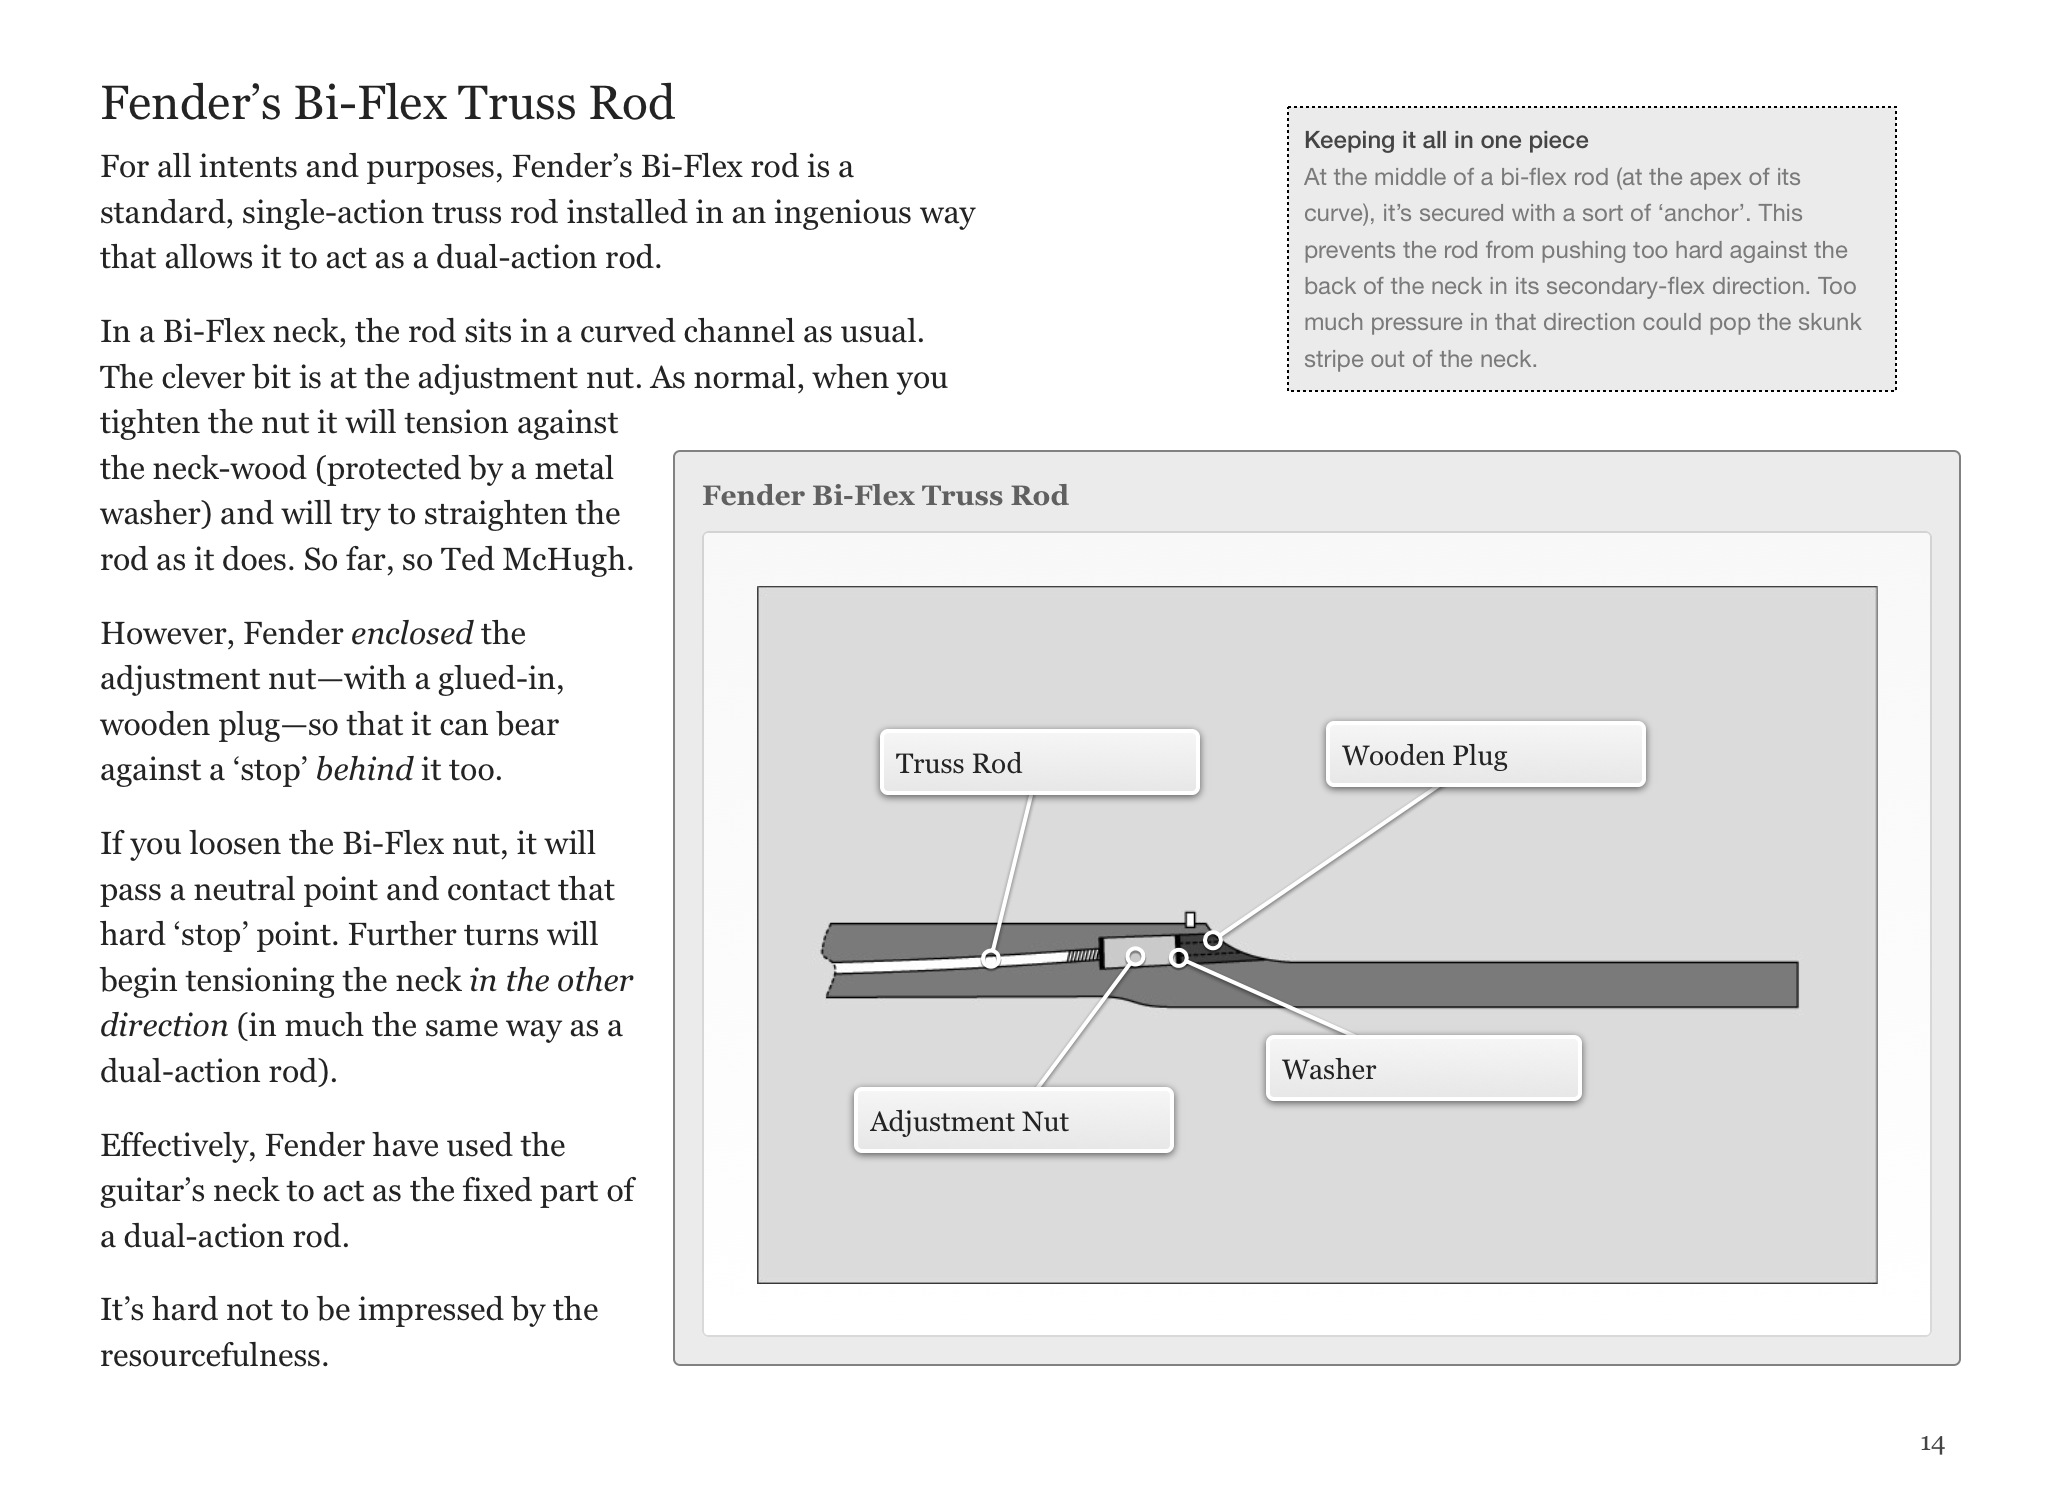 Sample page from Truss Rods Made Easy describing Fender's Bi-Flex truss rod